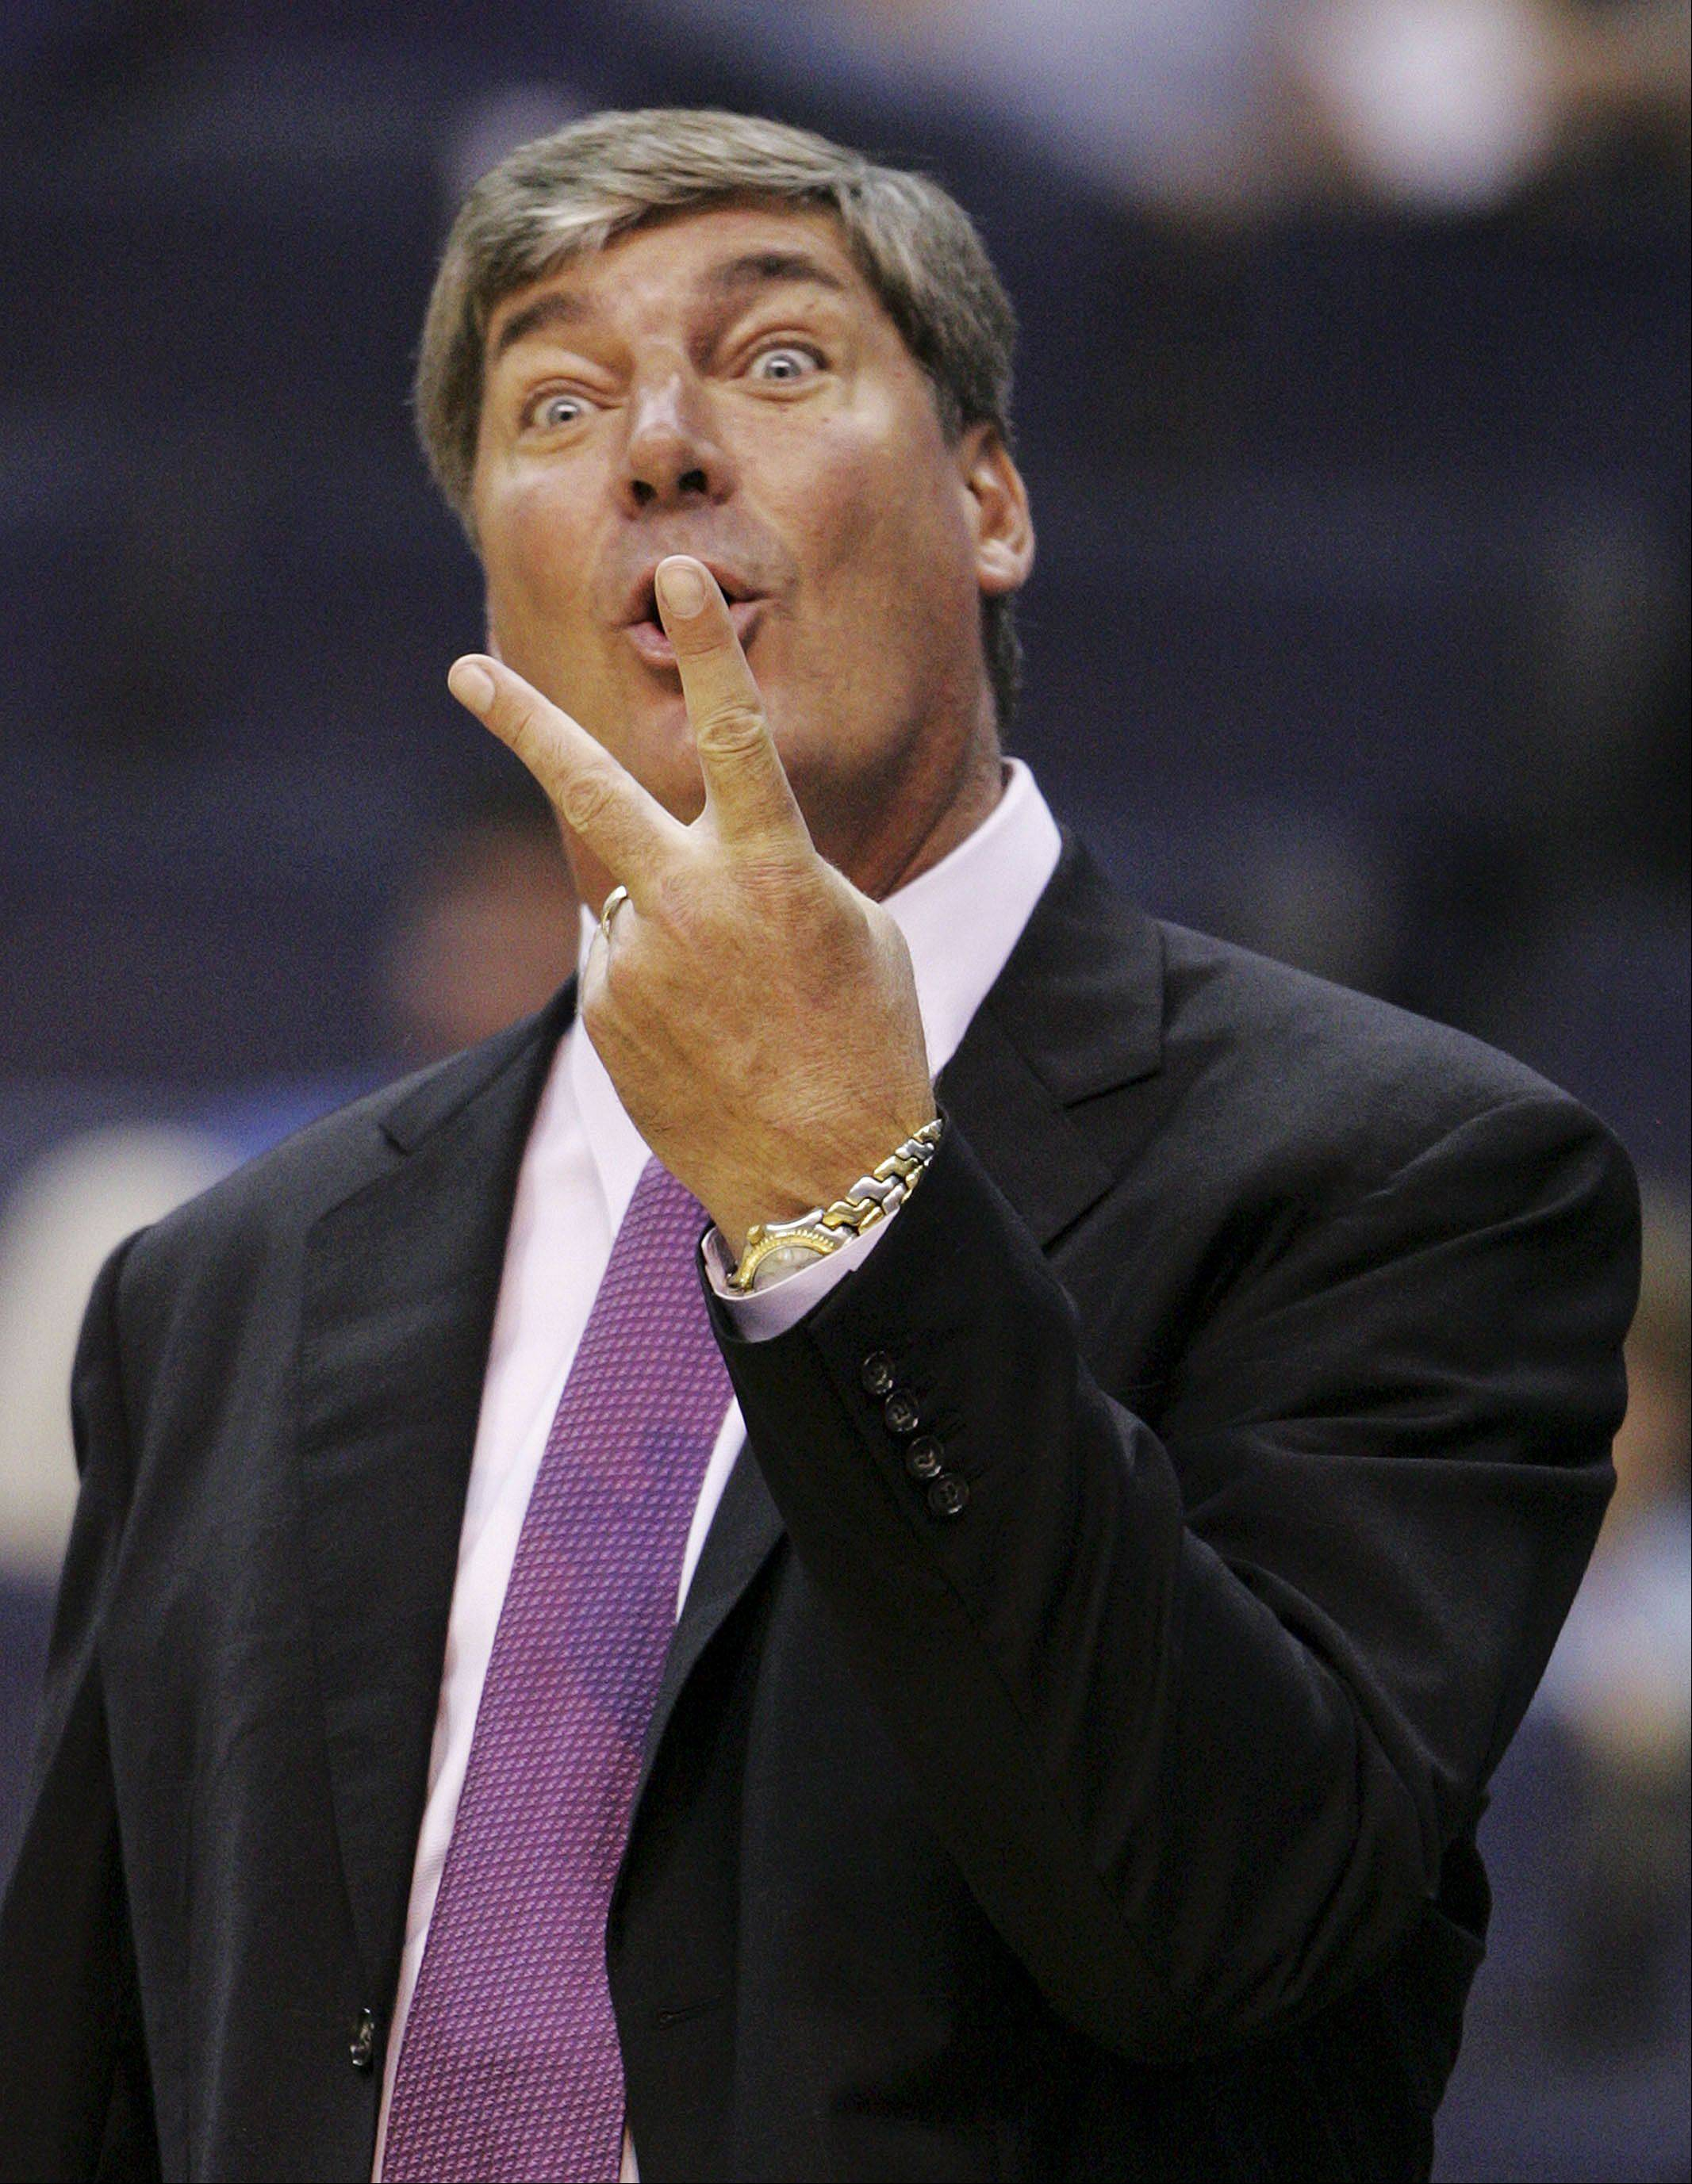 Detroit Shock�s head coach Bill Laimbeer reacts after his team was assessed separate technical fouls during the first quarter of a WNBA basketball game against the Washington Mystics, Friday, July 18, 2008, in Washington. (AP Photo/Haraz N. Ghanbari)